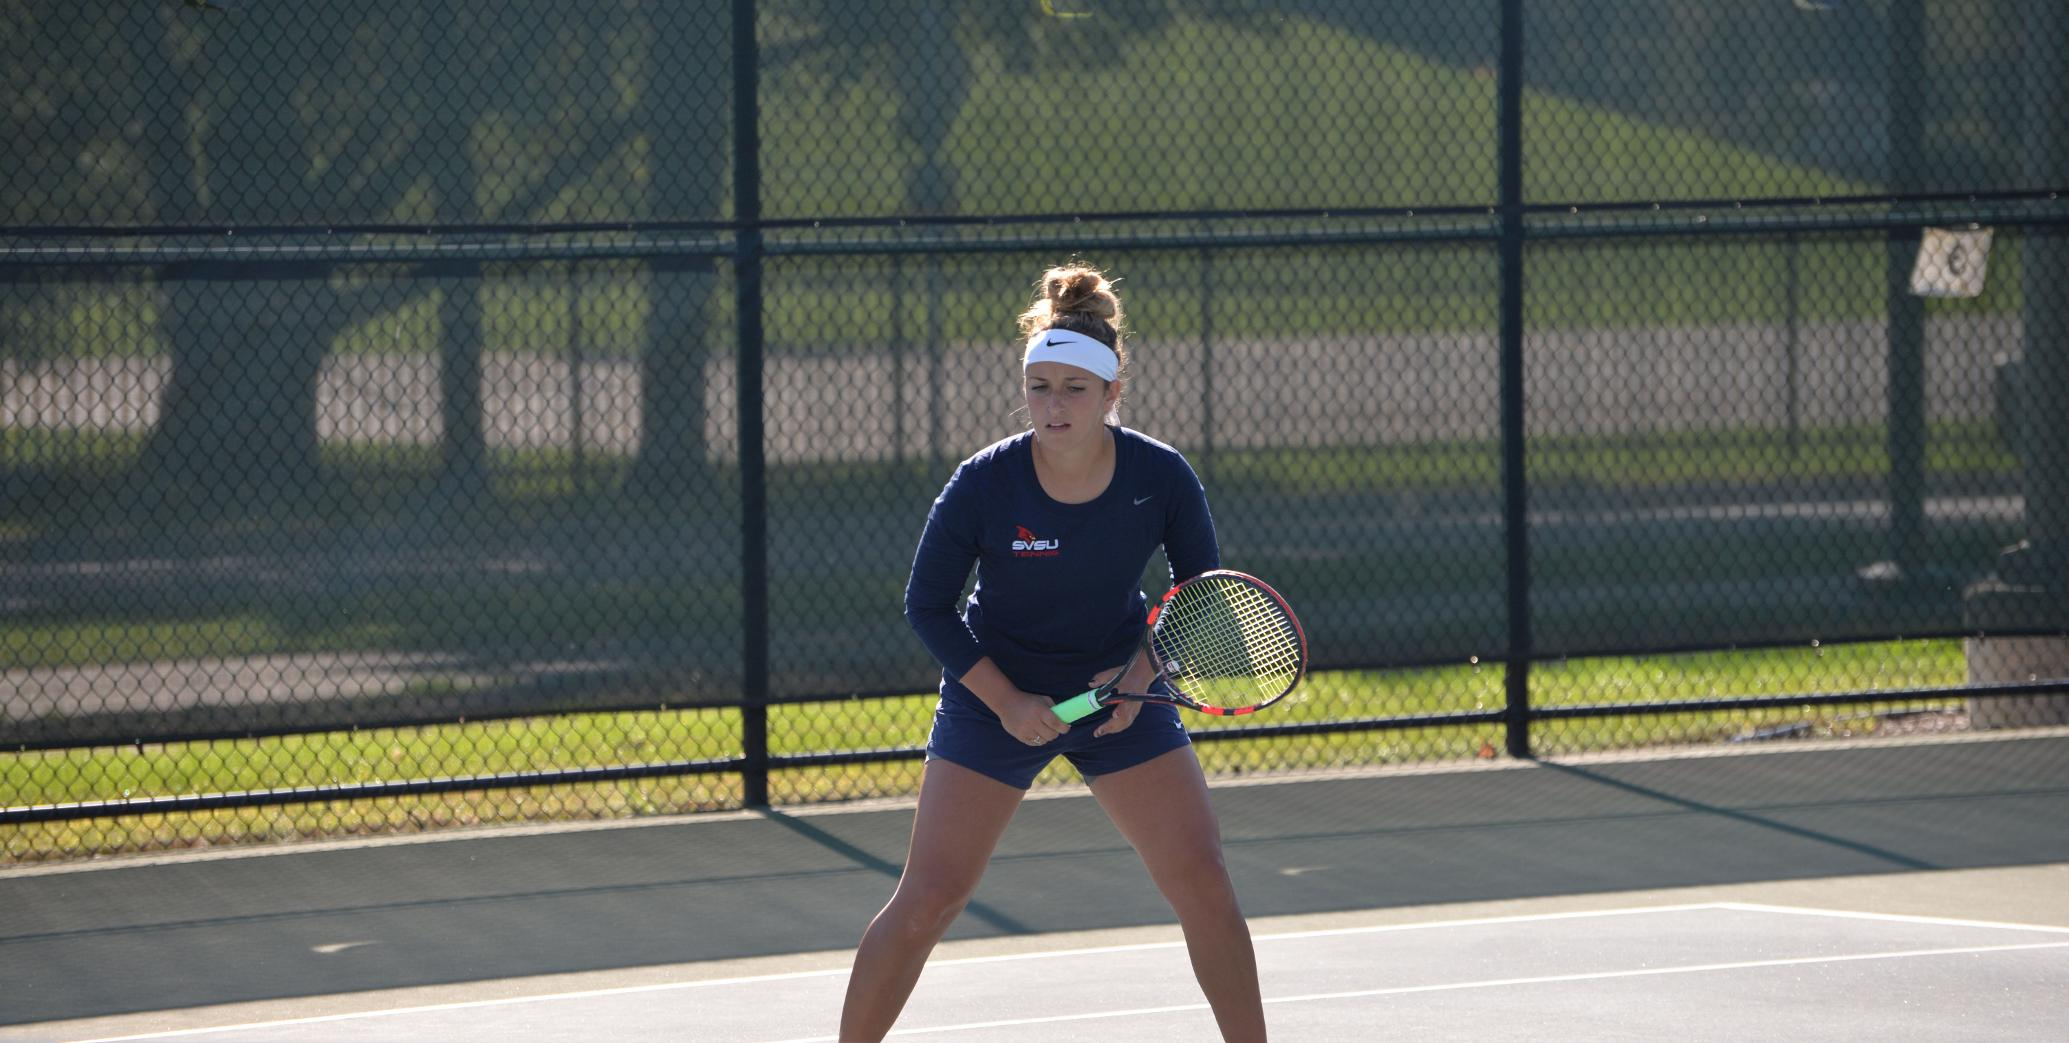 Tennis Drops Close Season Opener at Hillsdale, 5-4